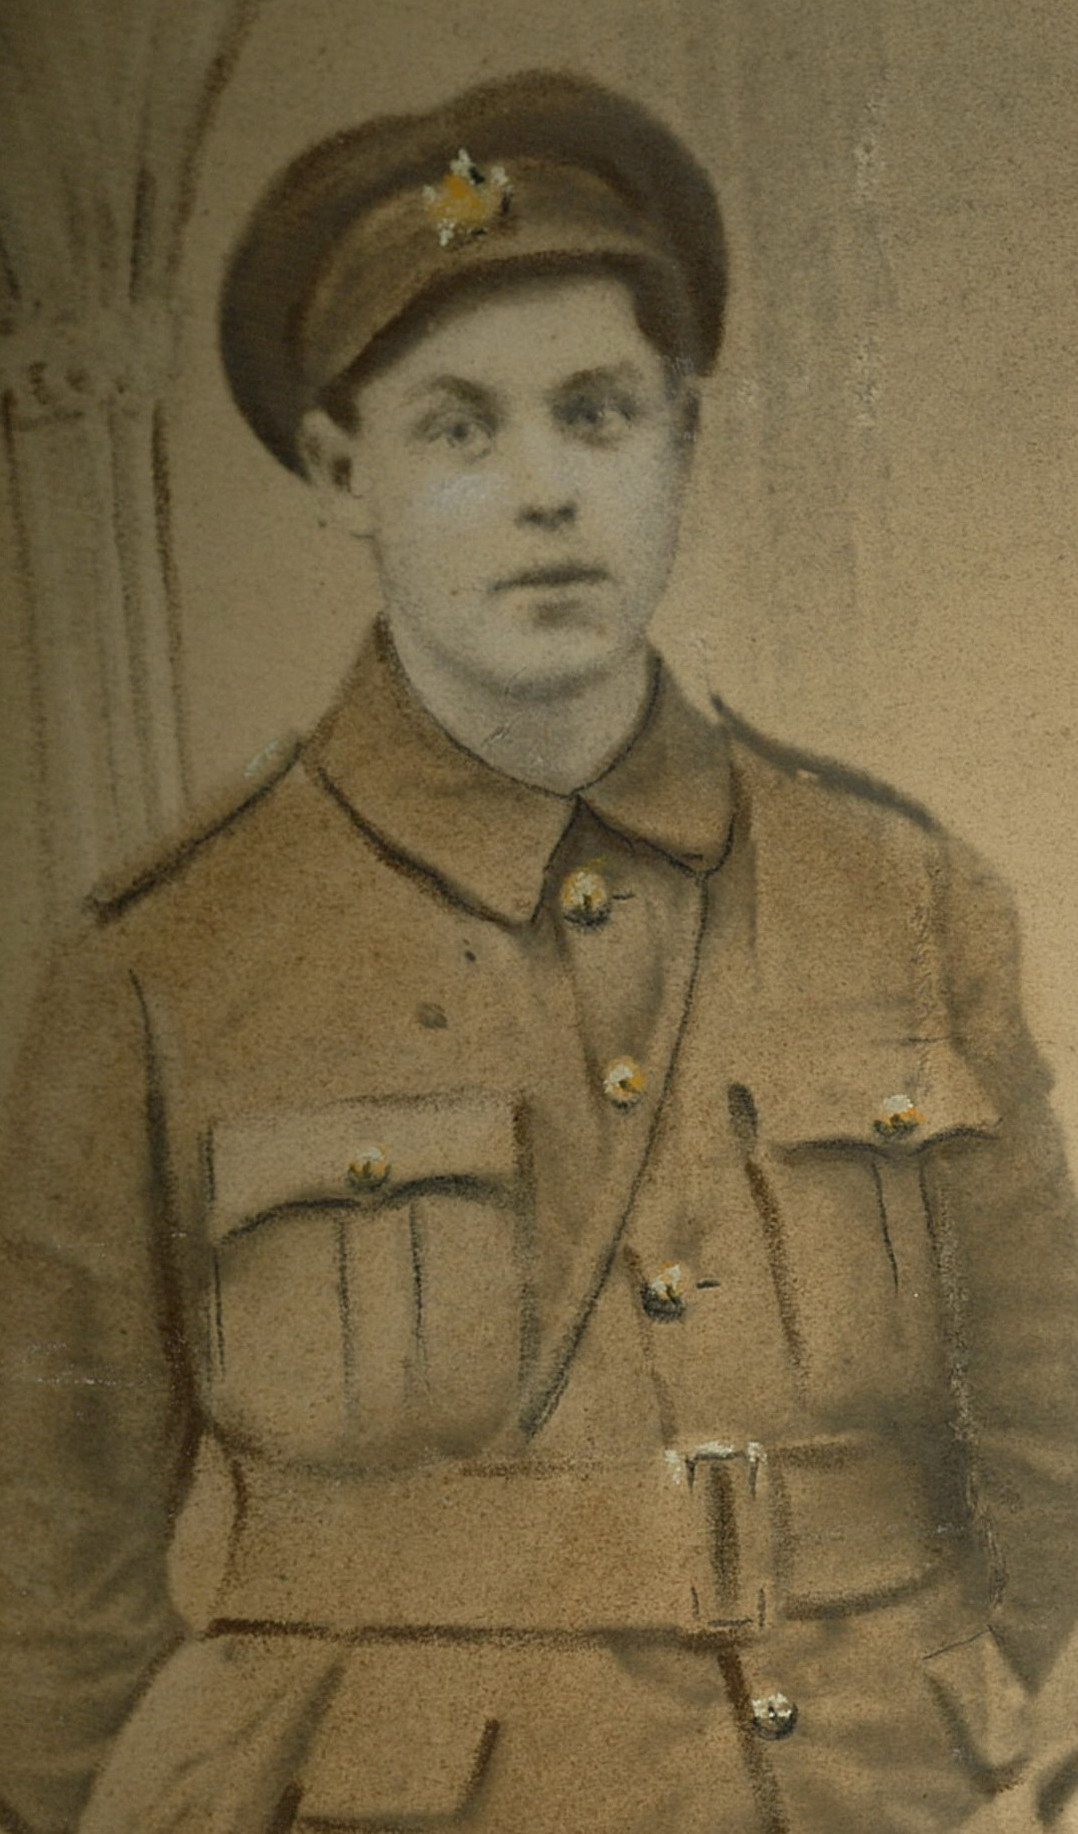 Photo of EDWARD JOSEPH ALCOCK– photo courtesy of the Alcock family, the Lake of the Woods Museum, and the Kenora Great War Project